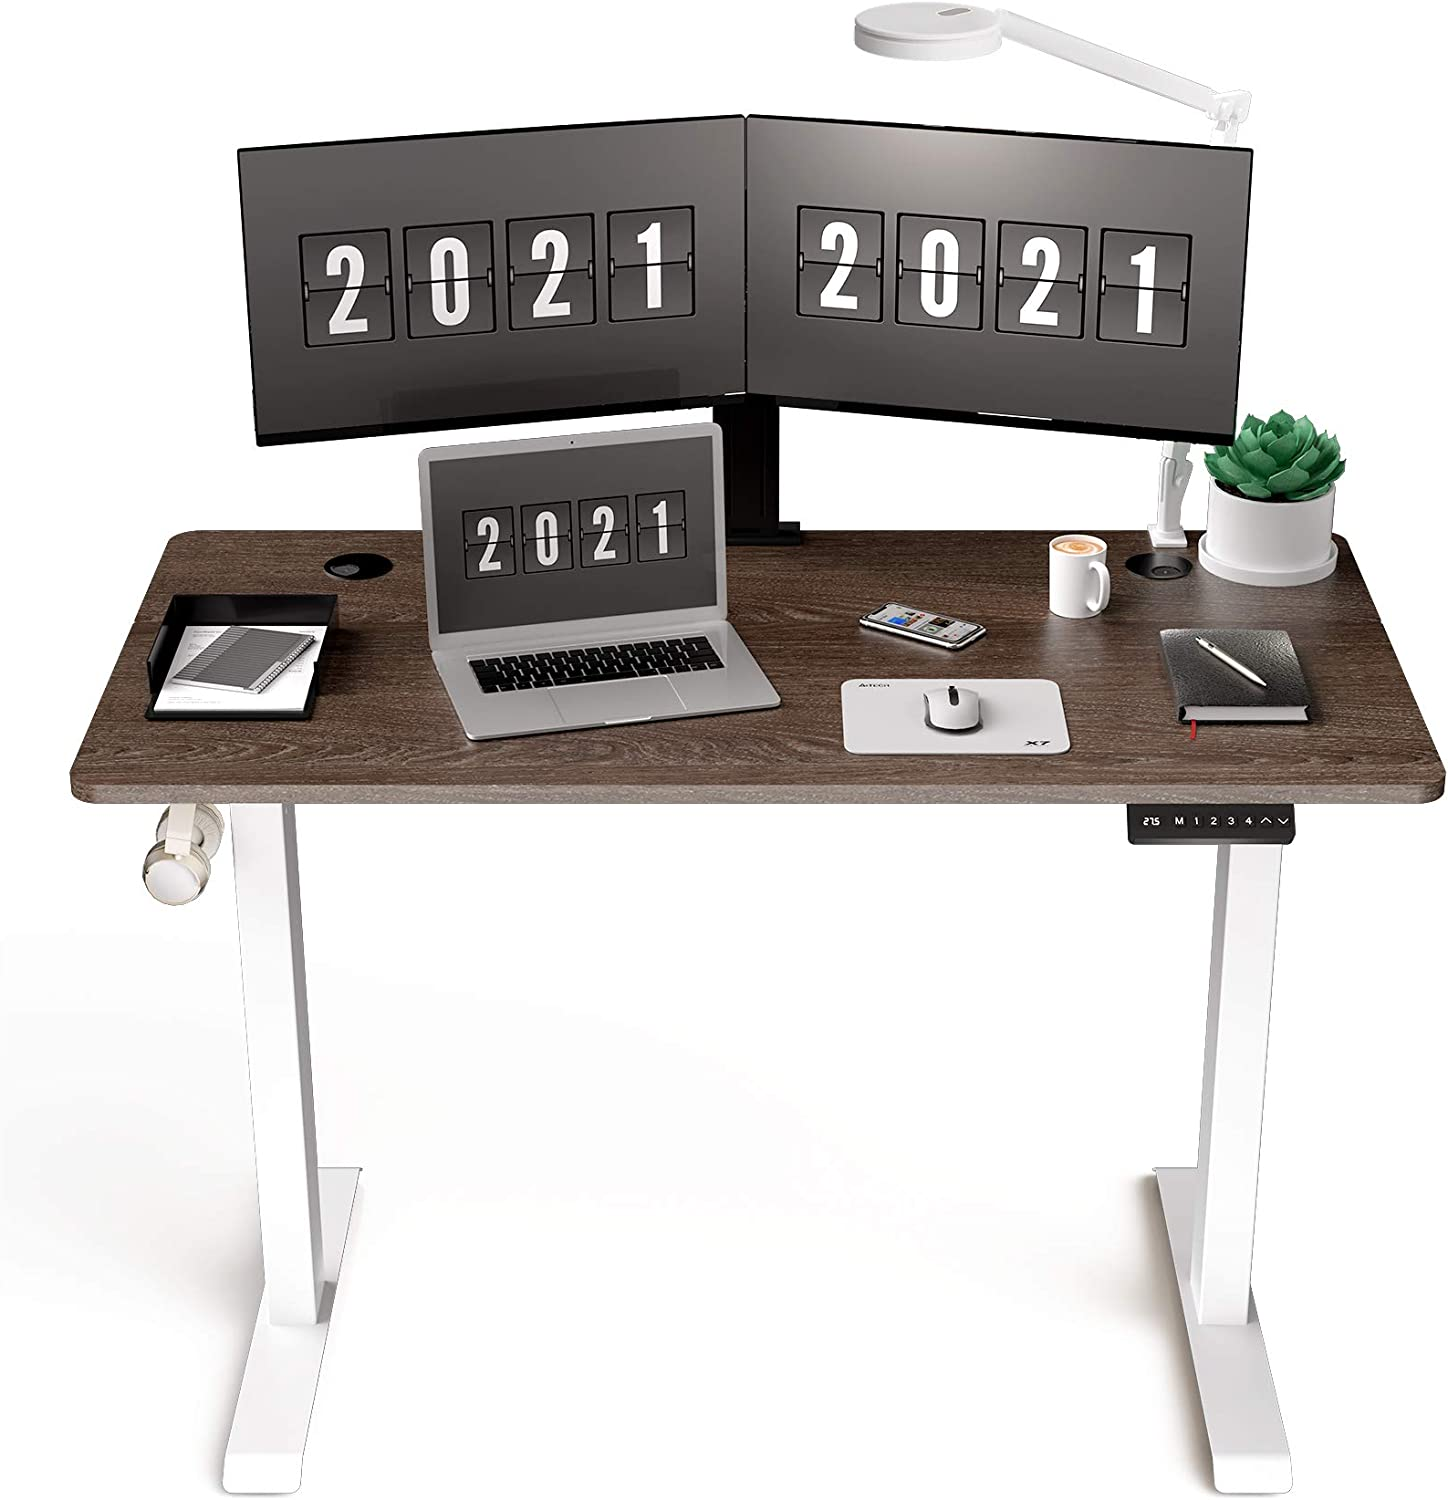 HisoHu Electric Height Adjustable Standing Computer Desk, Ergonomic Sit Stand Home Office Workstation Table(48 x 24 Inches Walnut Tabletop/White Bracket)